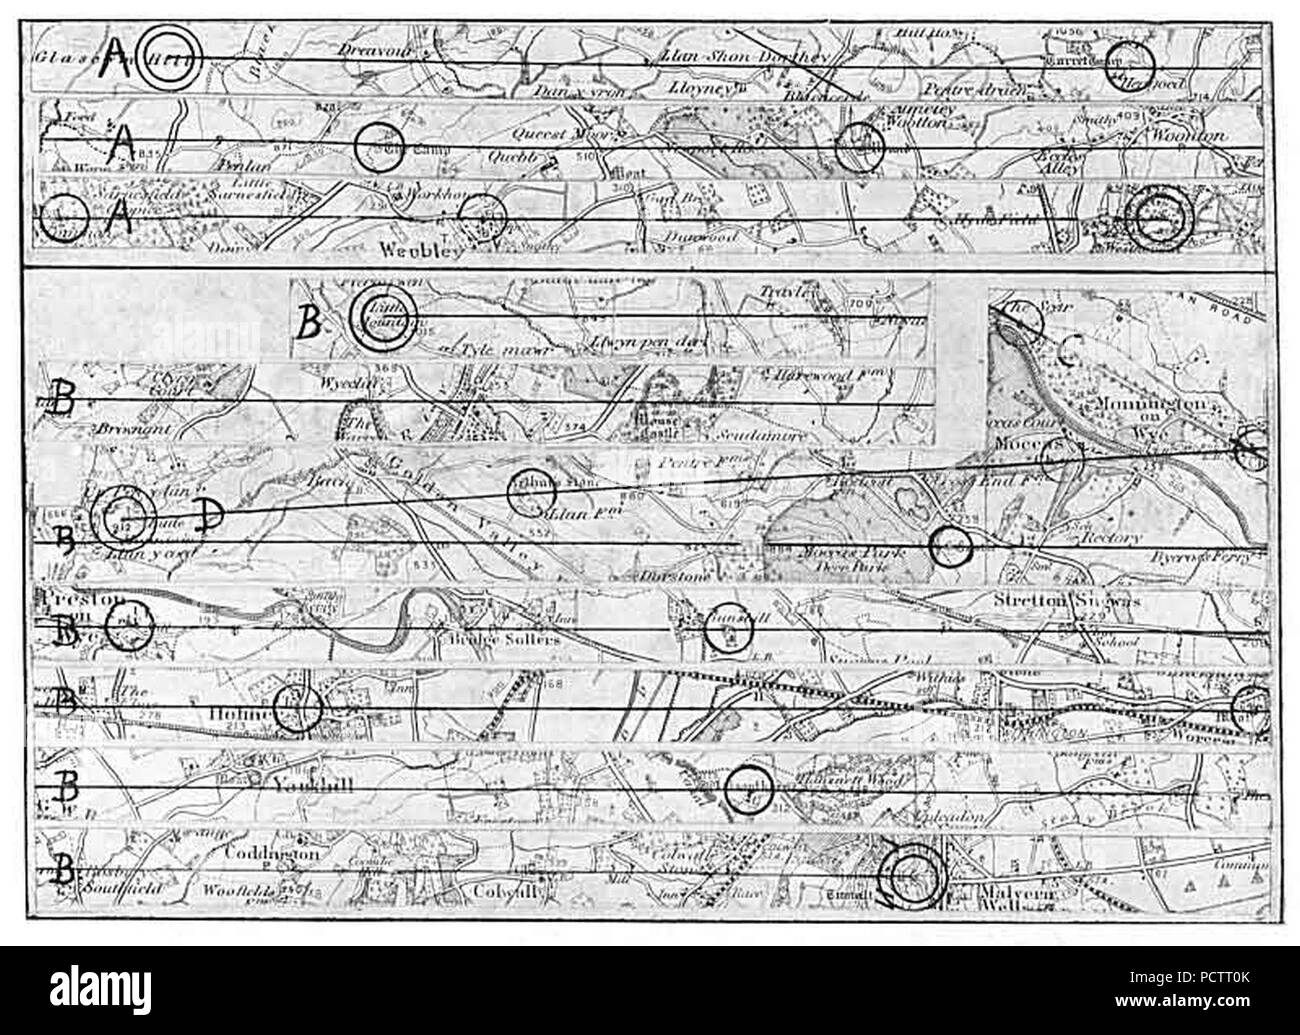 hight resolution of alfred watkins map of two leys stock image